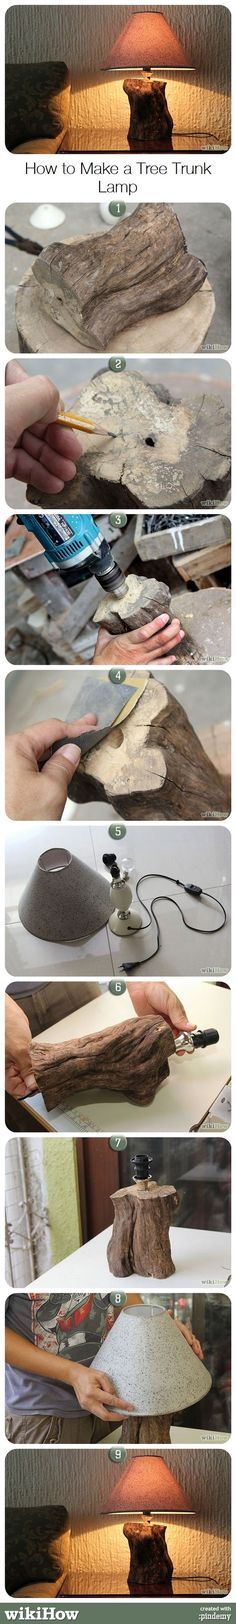 How to Make a Tree Trunk Lamp. Want a cool lamp for your home? Make use of a fallen tree and broken lamp shade to transform them into a beautiful decorative lighting piece for your living room.